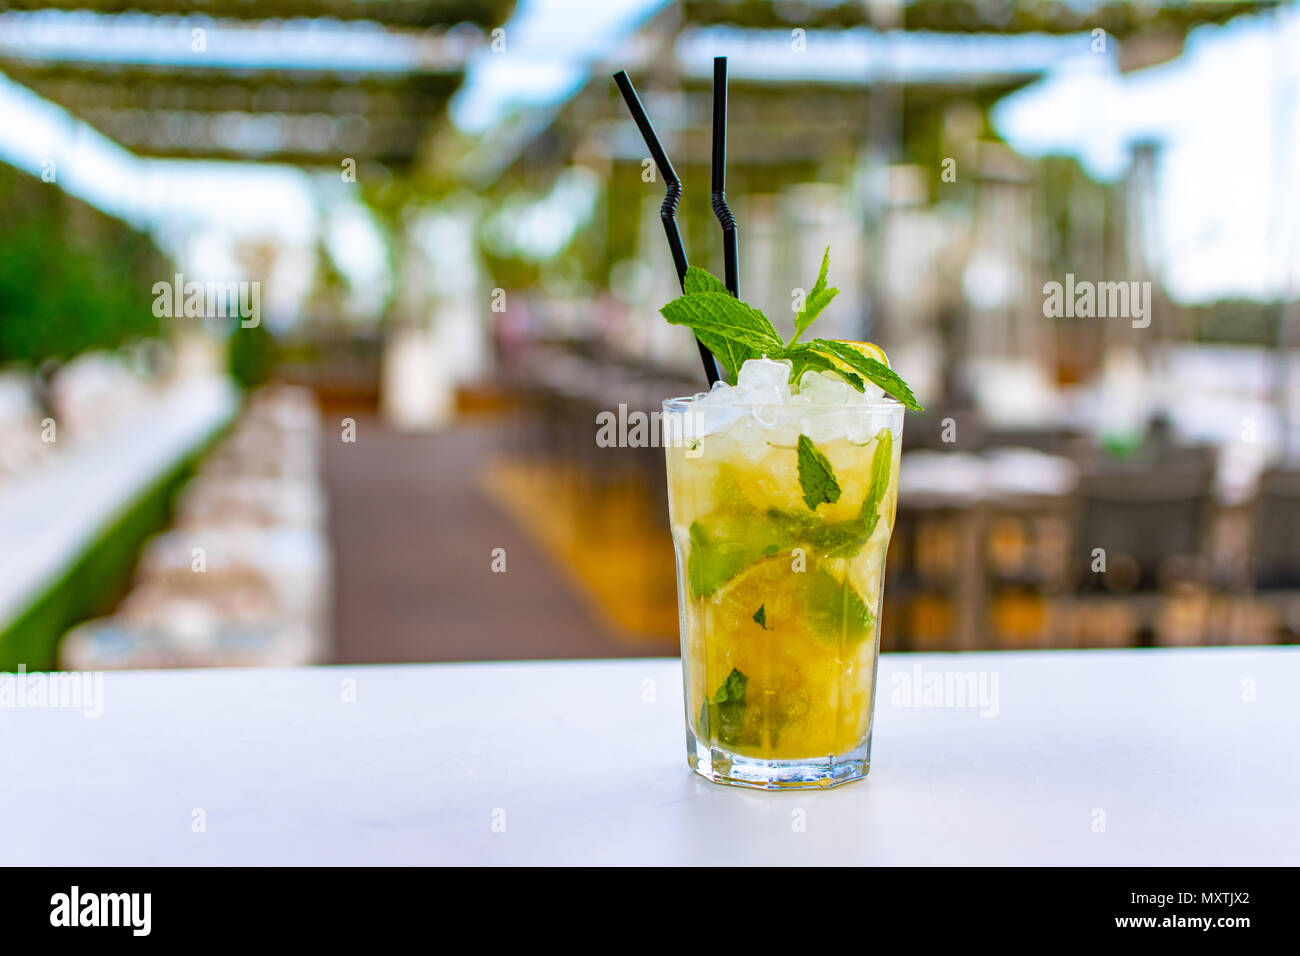 a chilled lime green mojito cocktail on a rooftop bar - Stock Image